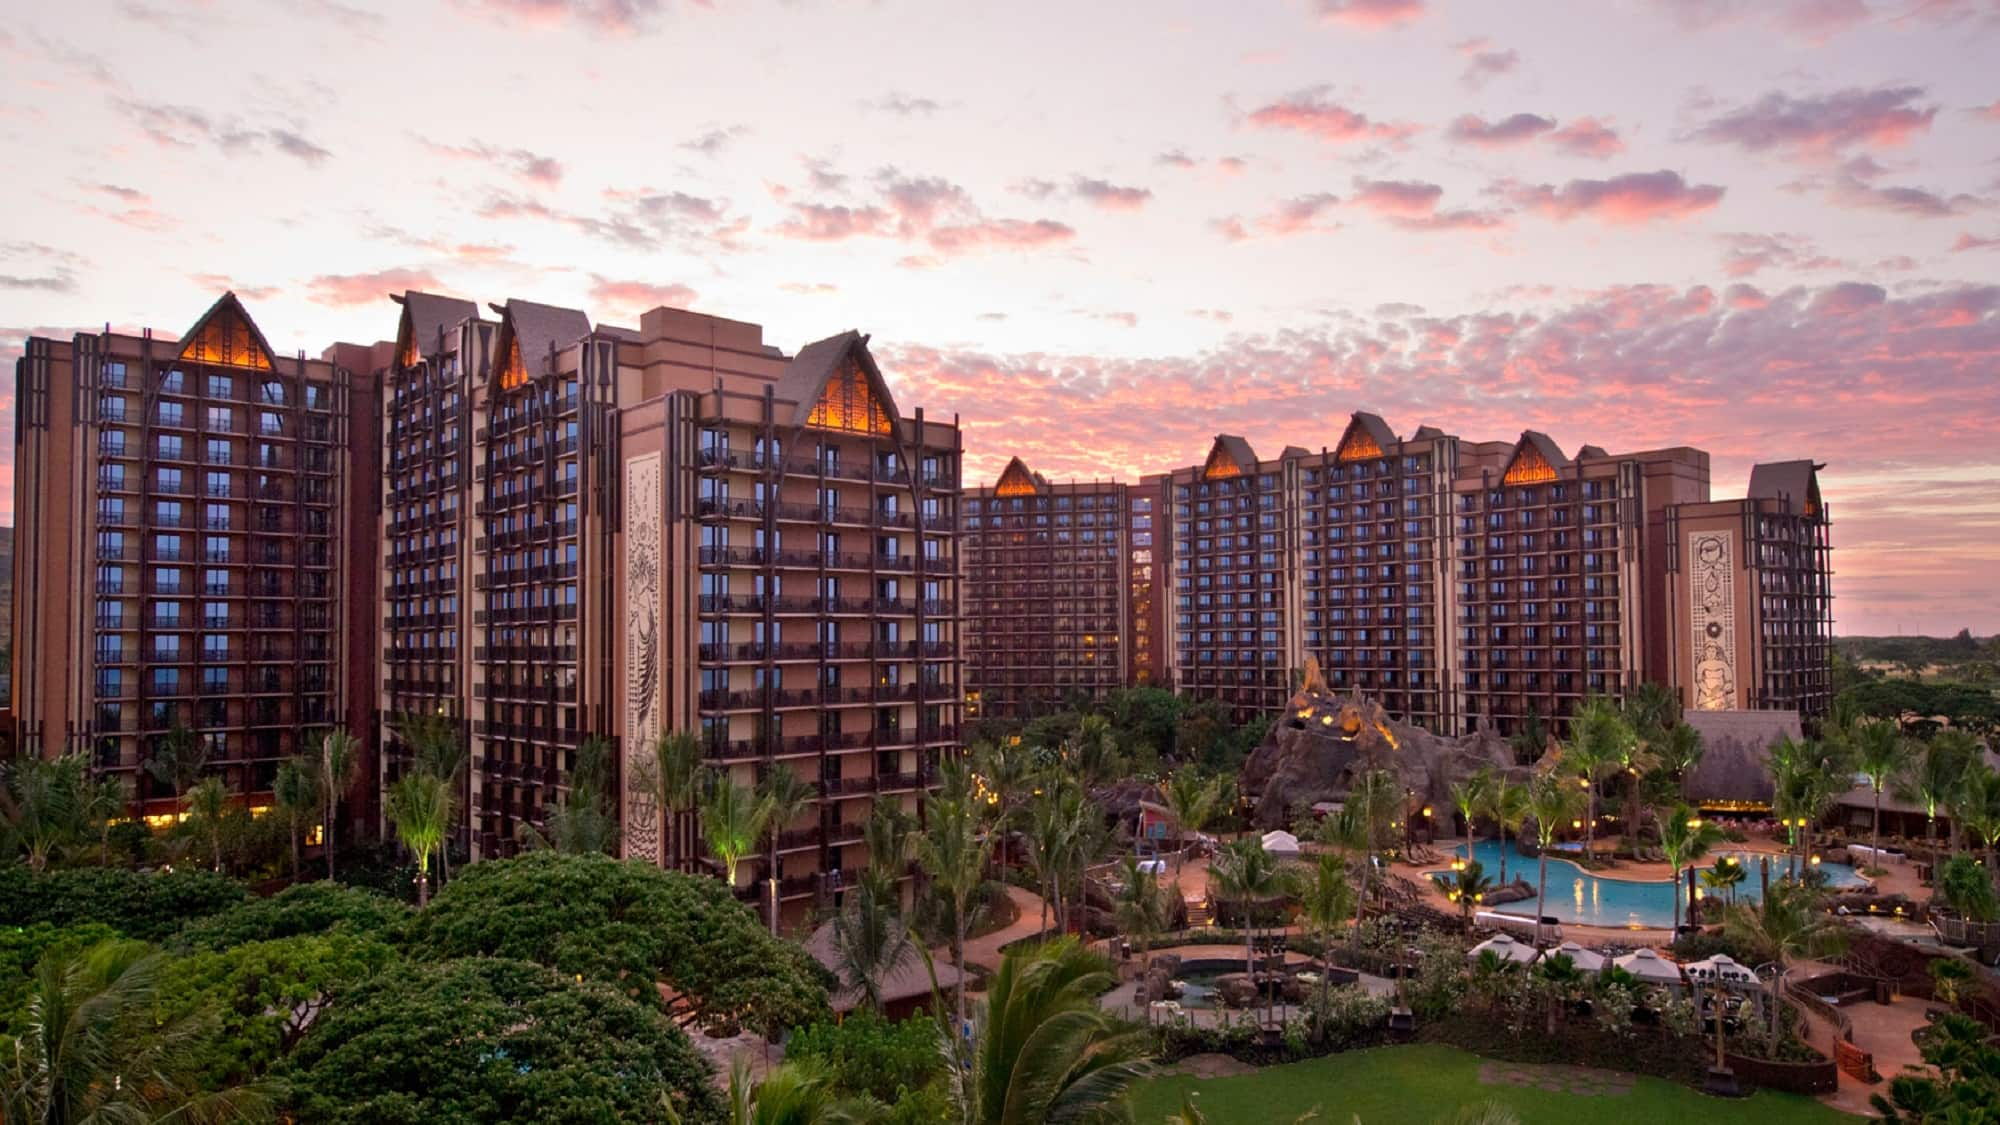 The exterior of Aulani Resort at dusk